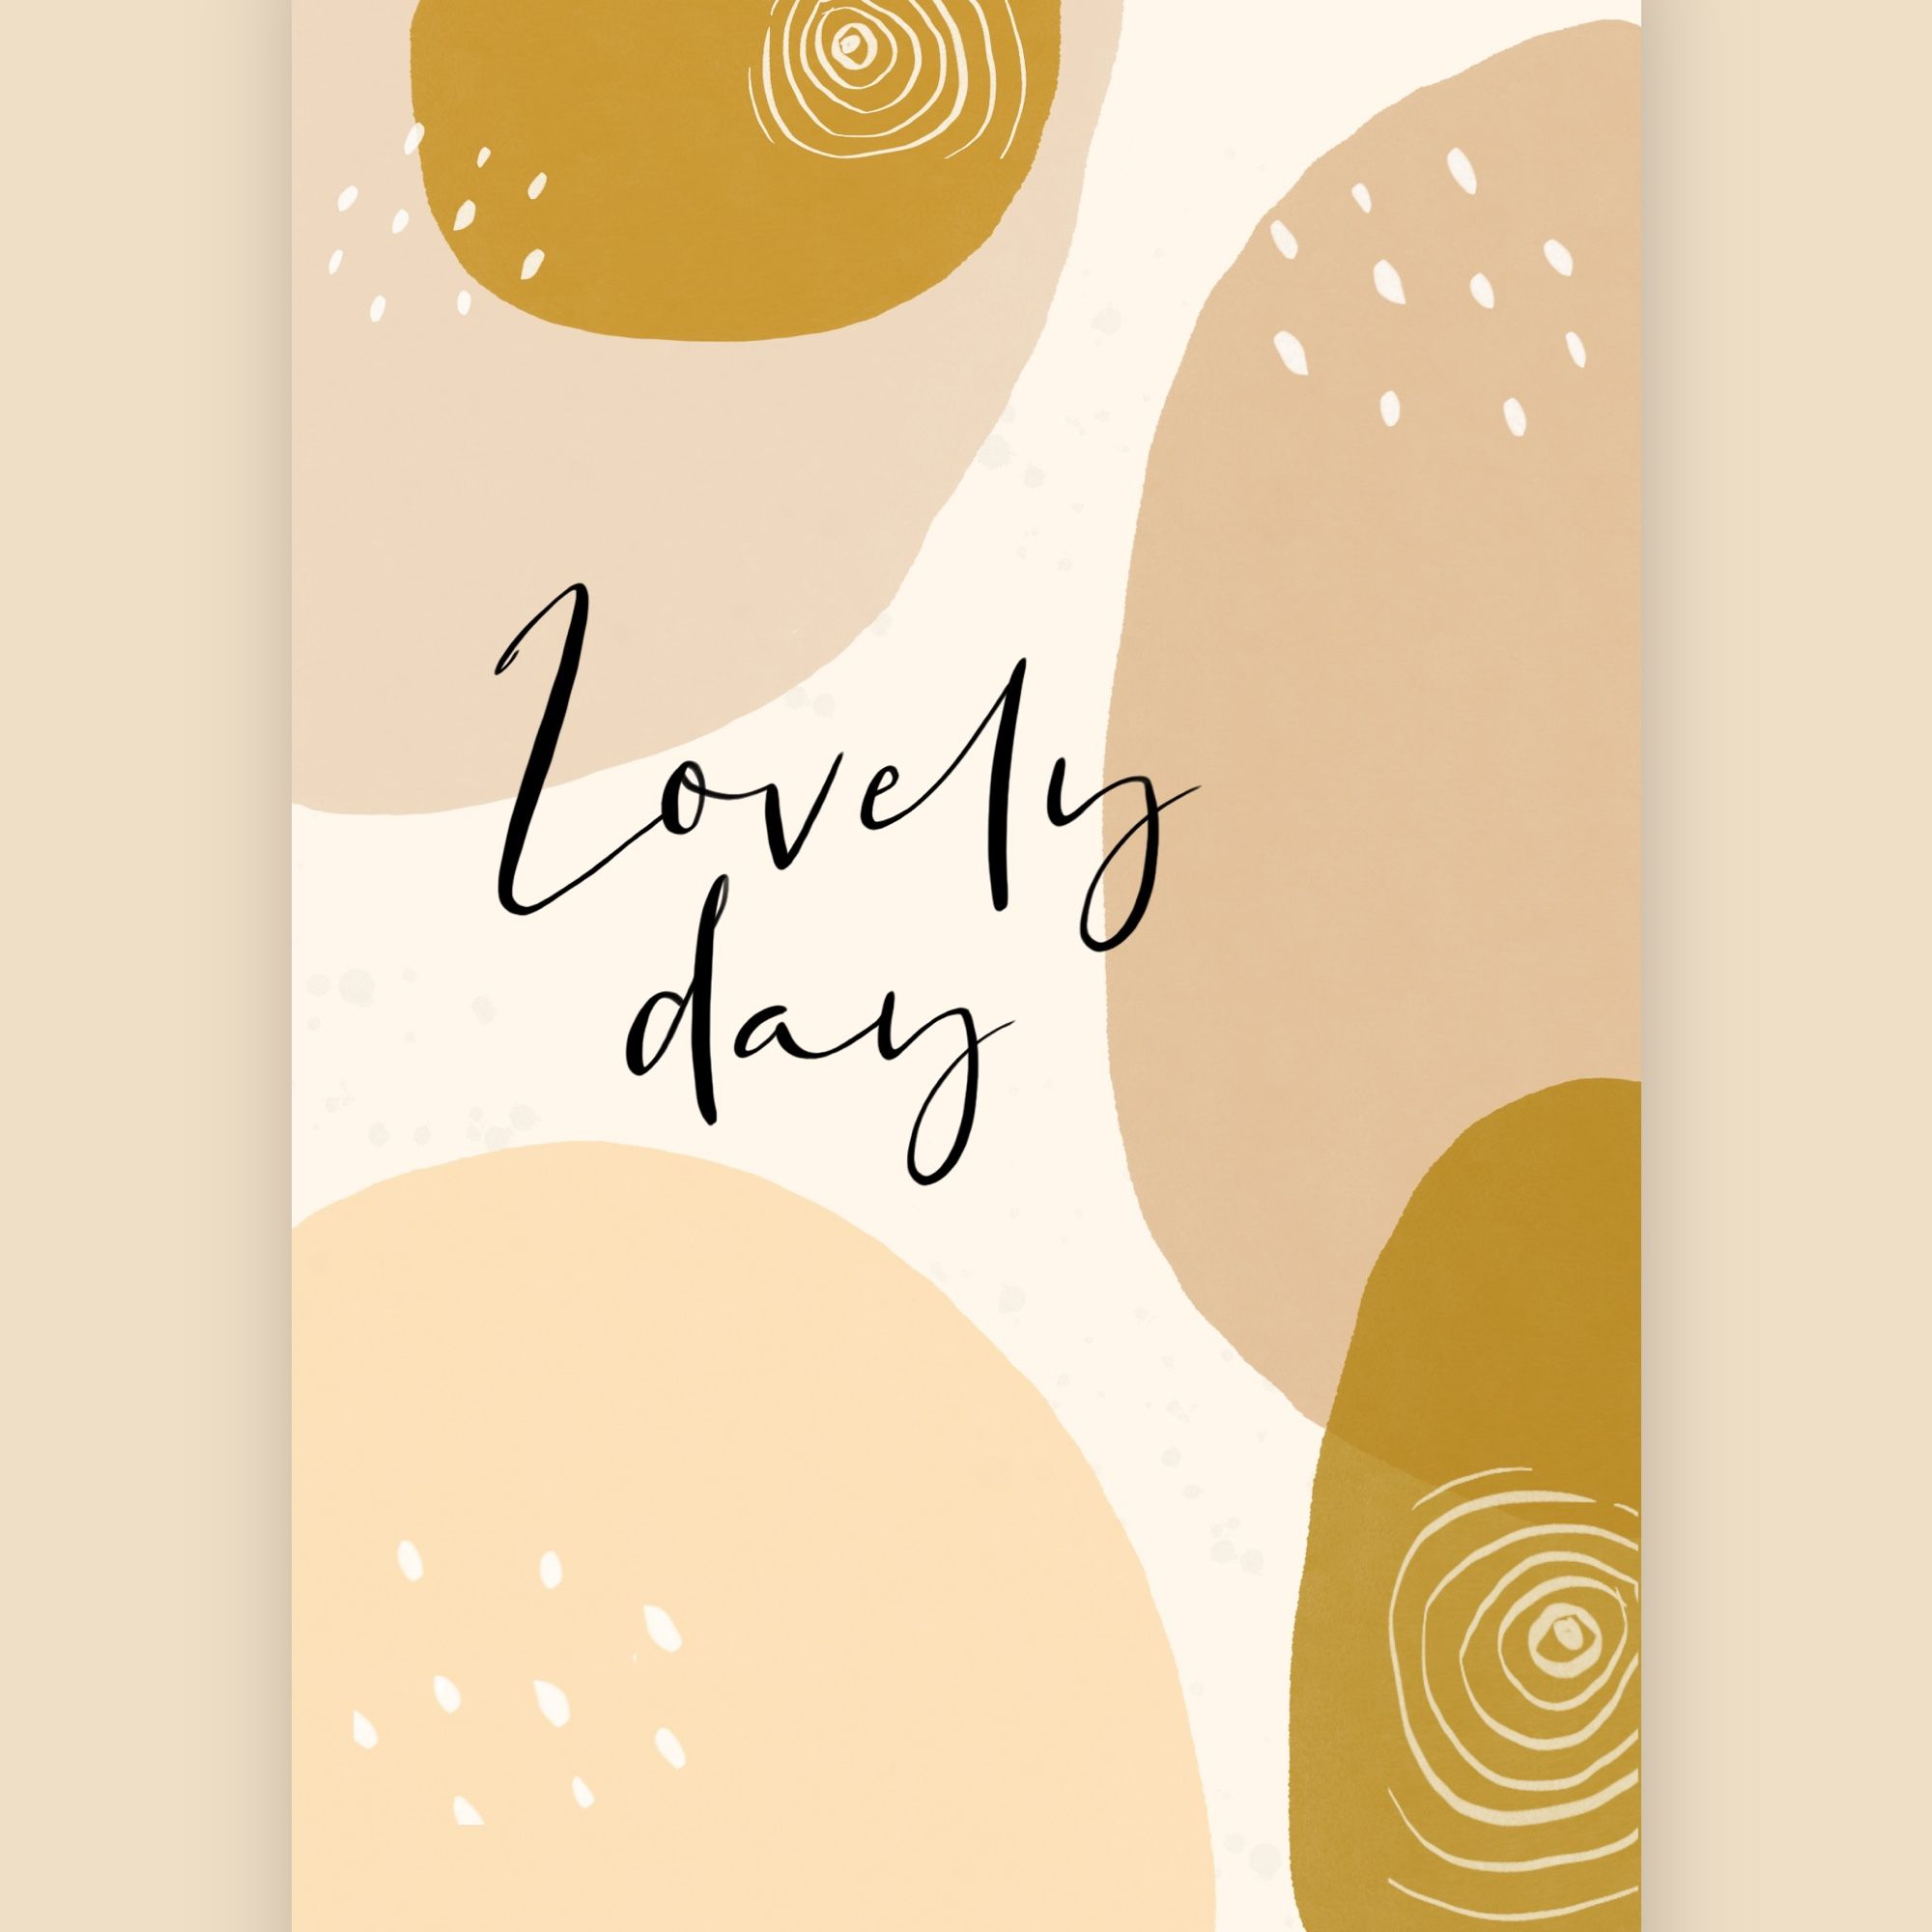 Lovely day design iPhone wallpaper ETSY $21   Iphone wallpaper ...